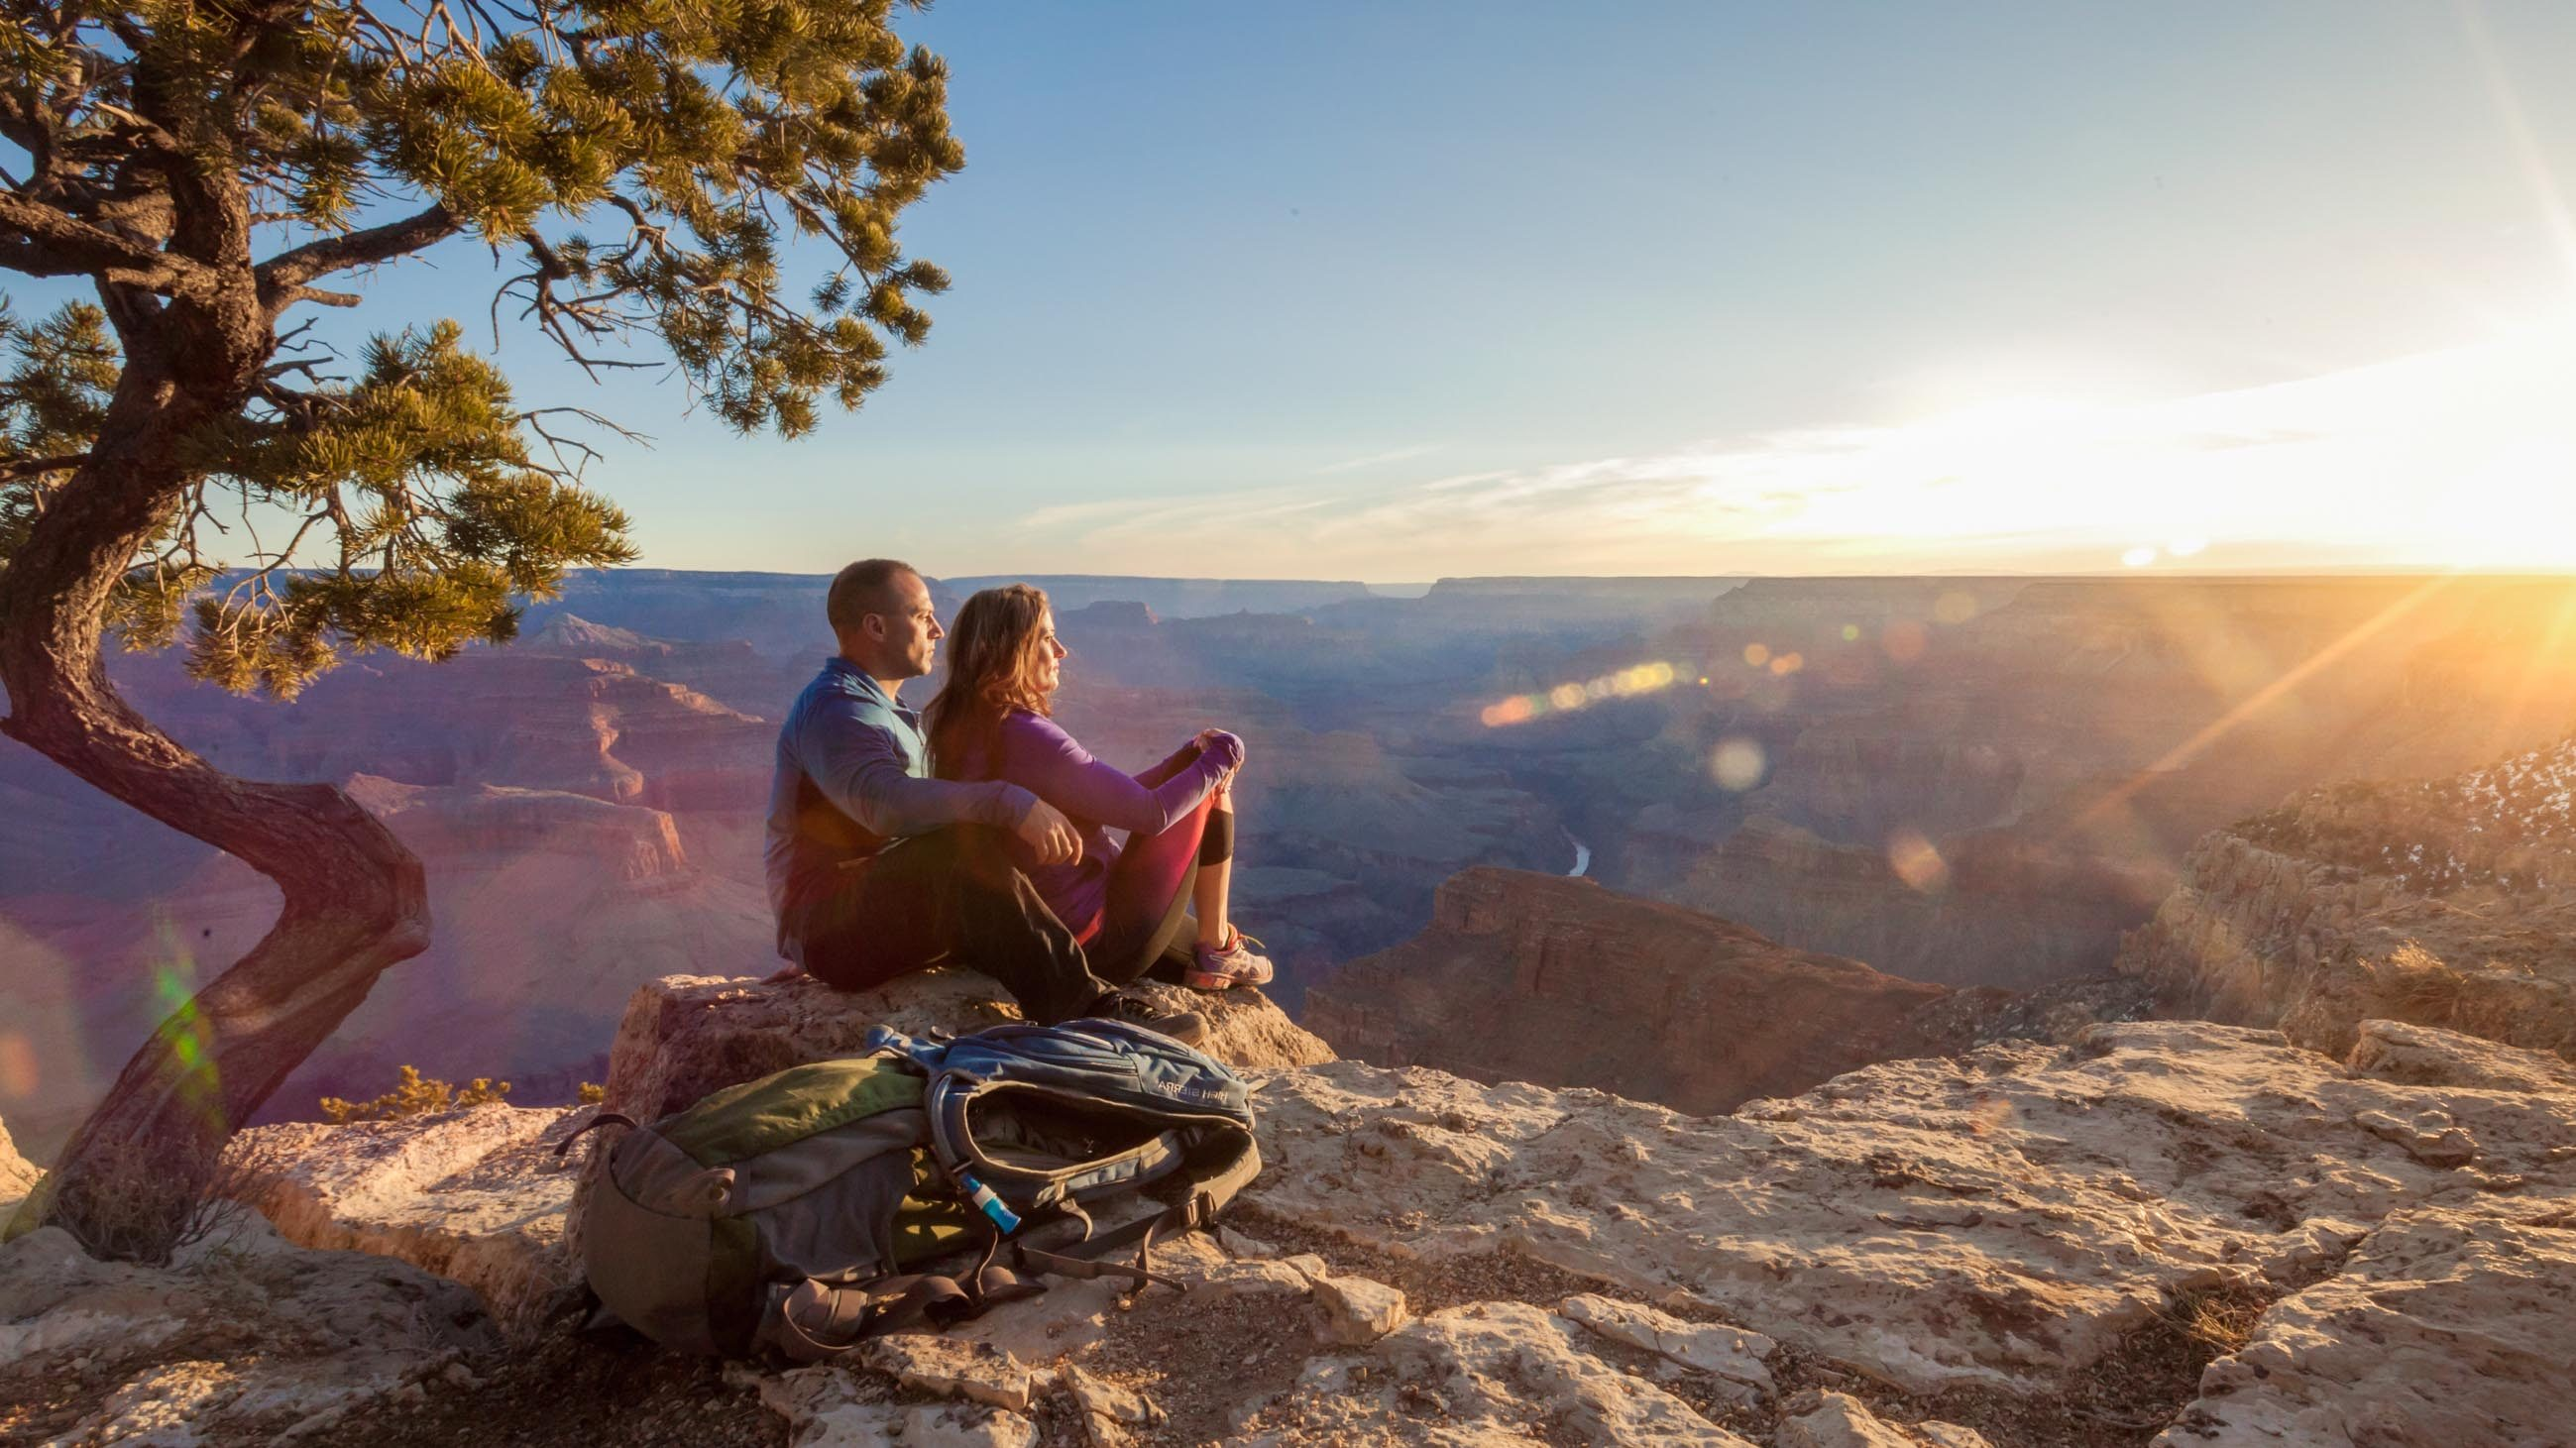 Hikers sit on rocky overlook to watch Grand Canyon sunset